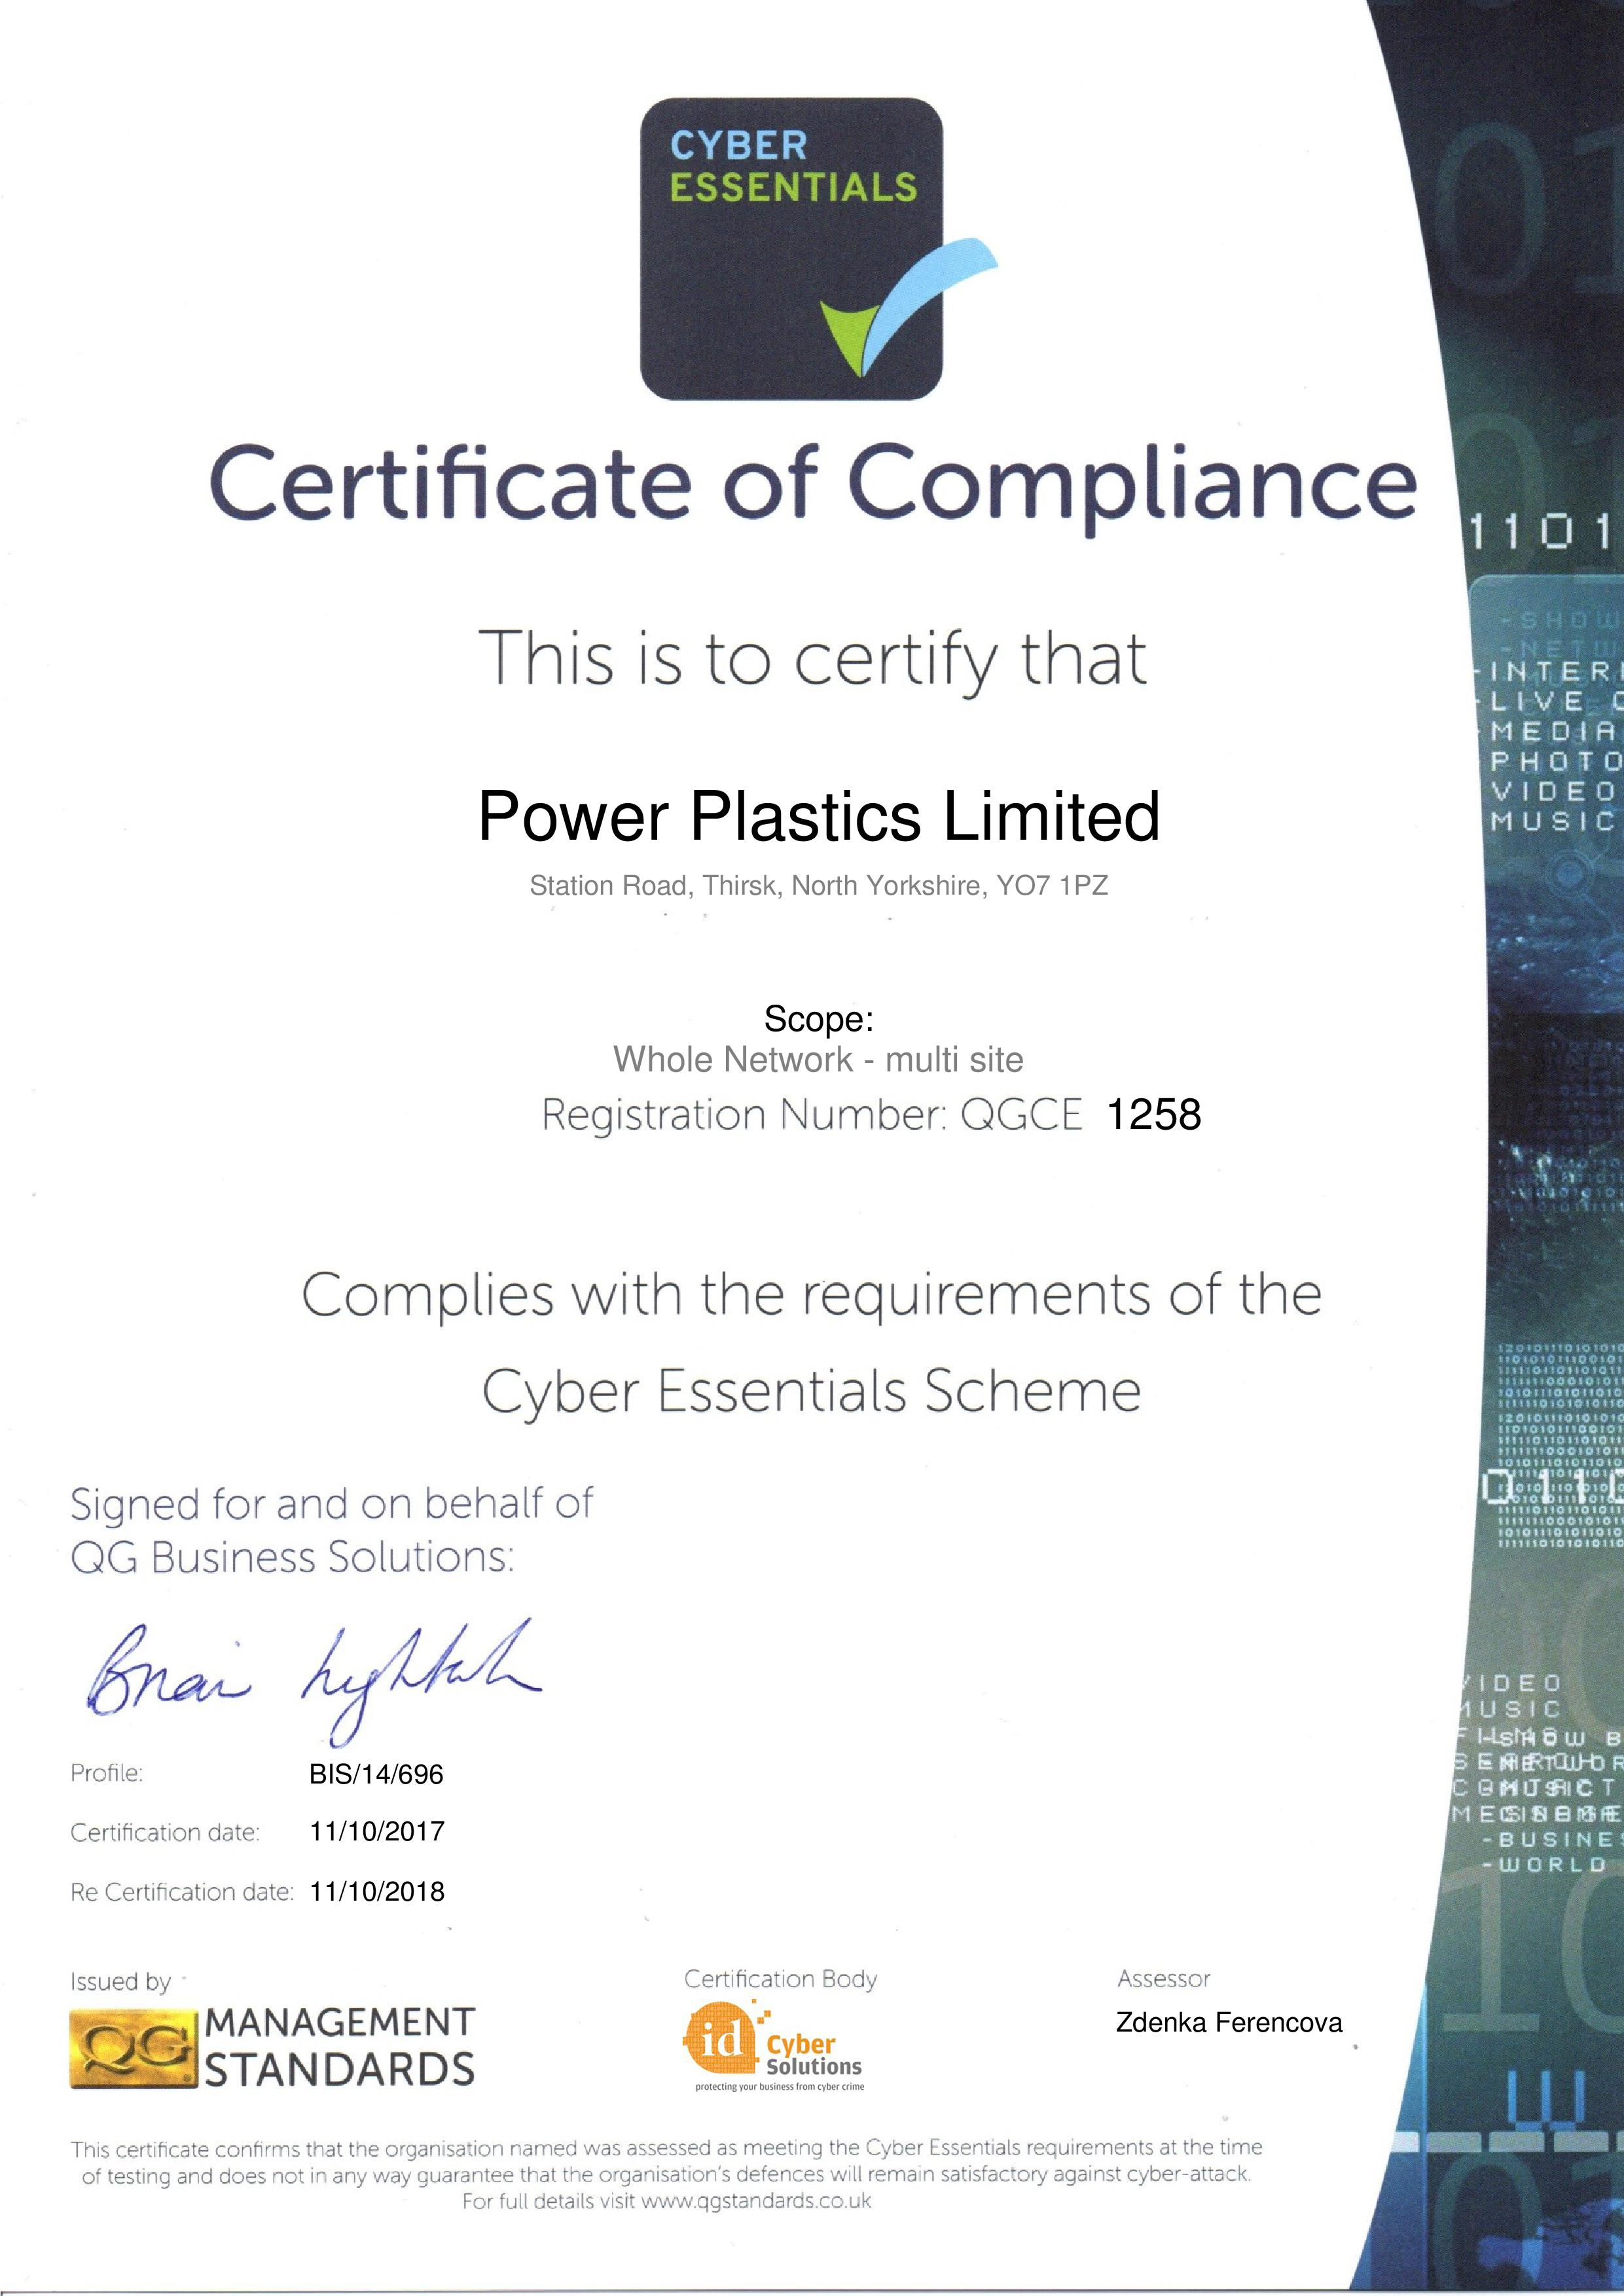 QGCE1258 Power Plastics Limited